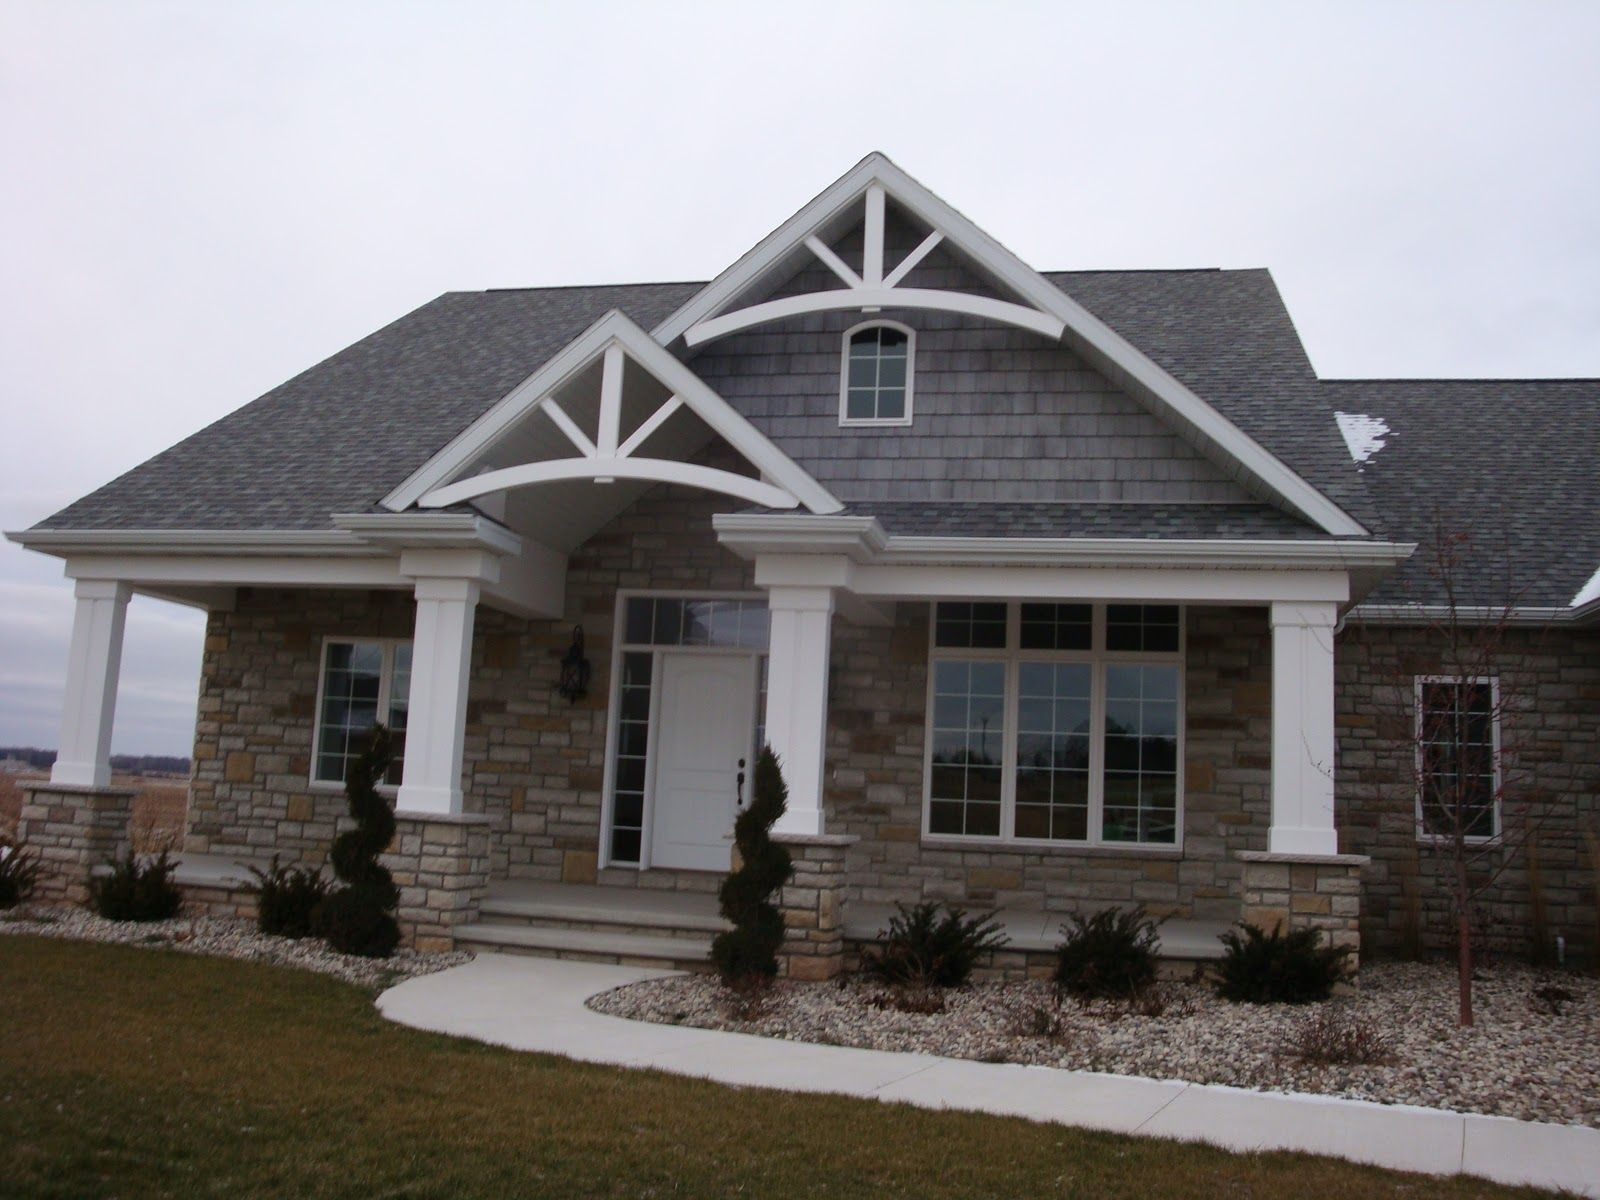 Vinyl siding and stone combination stucco option a nice for Stucco stone exterior designs